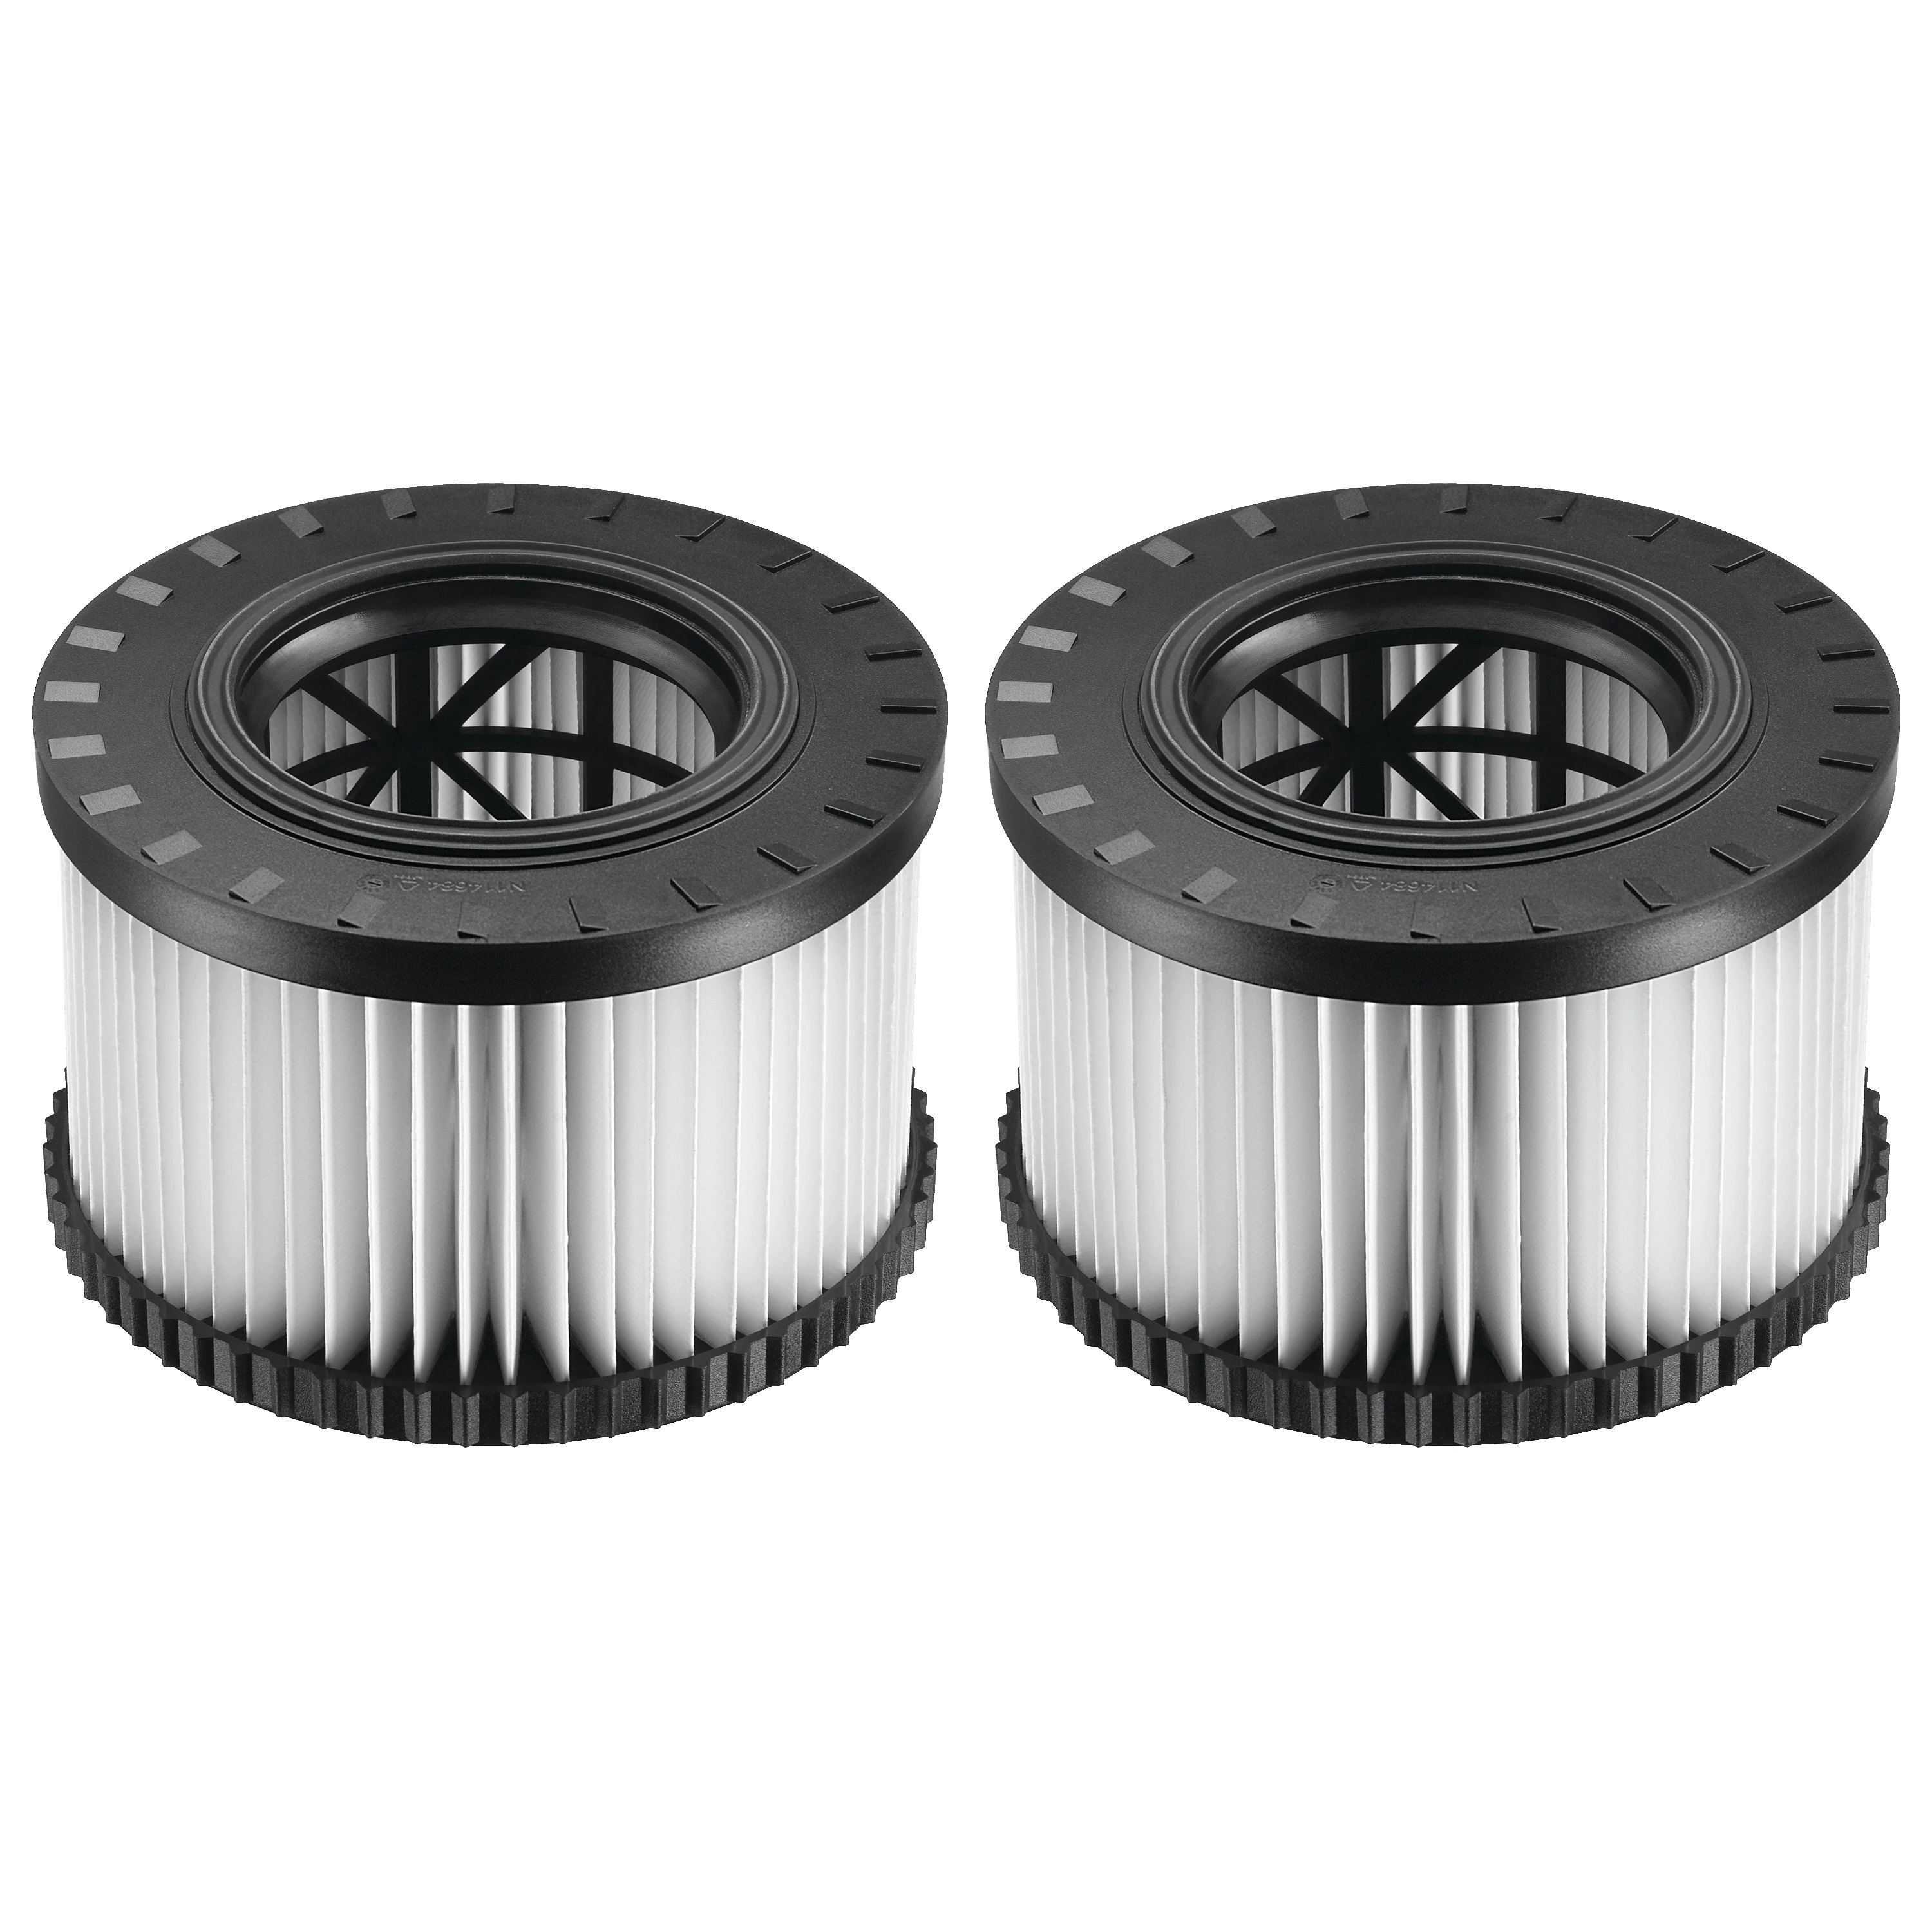 Replacement HEPA Filter Set for DWV010 & DWV012 (TYPE 2) Dust Extractors - Dustless Attachments